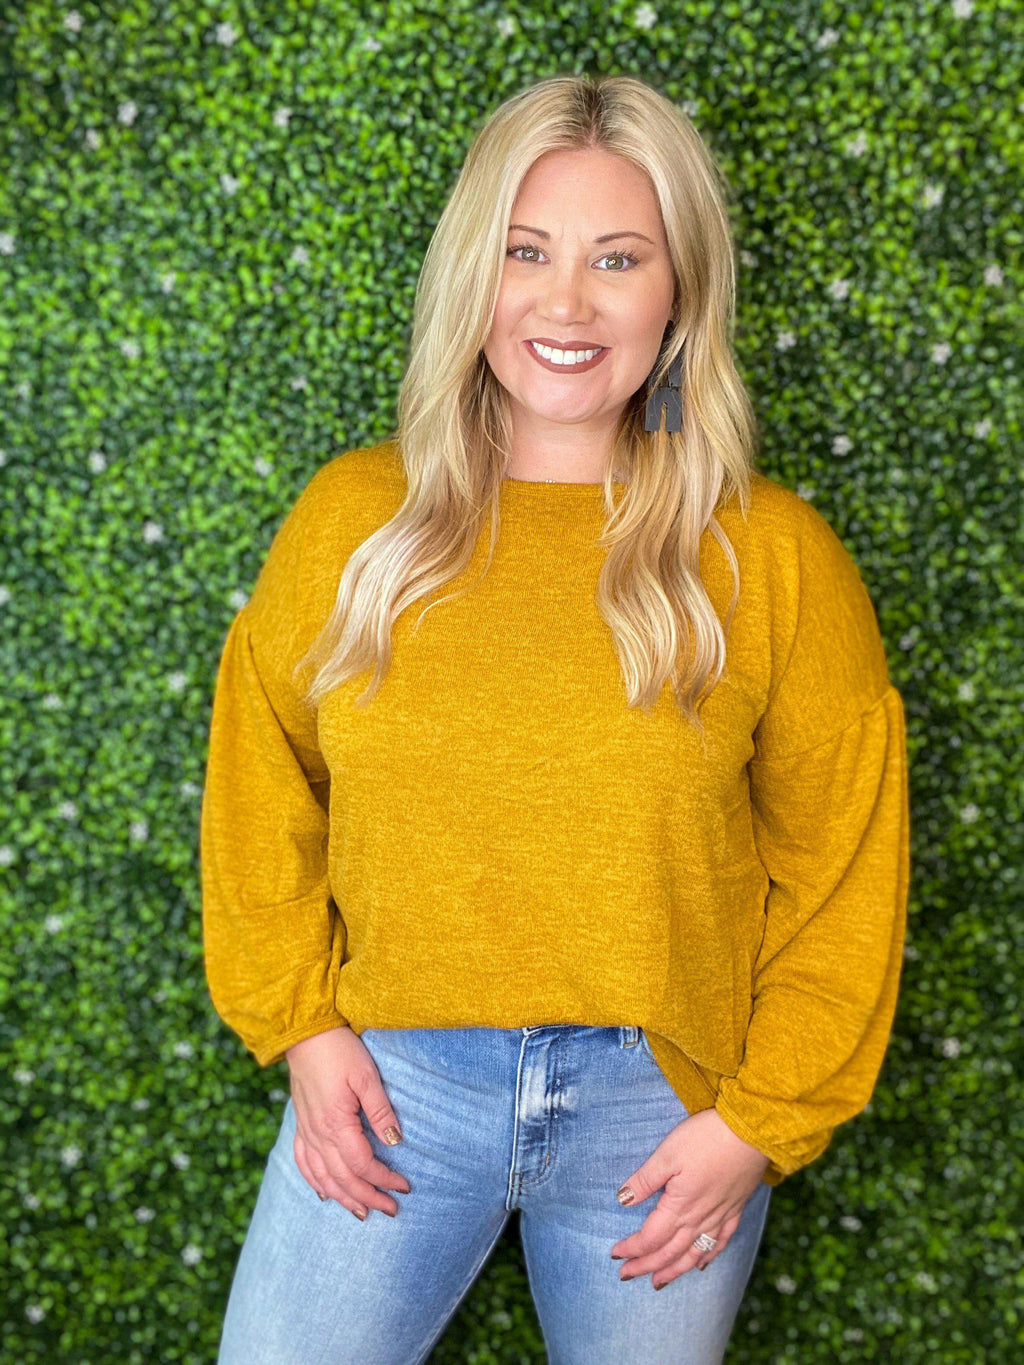 Curvy Keep Me Comfy Sweater - Preppy Pineapple